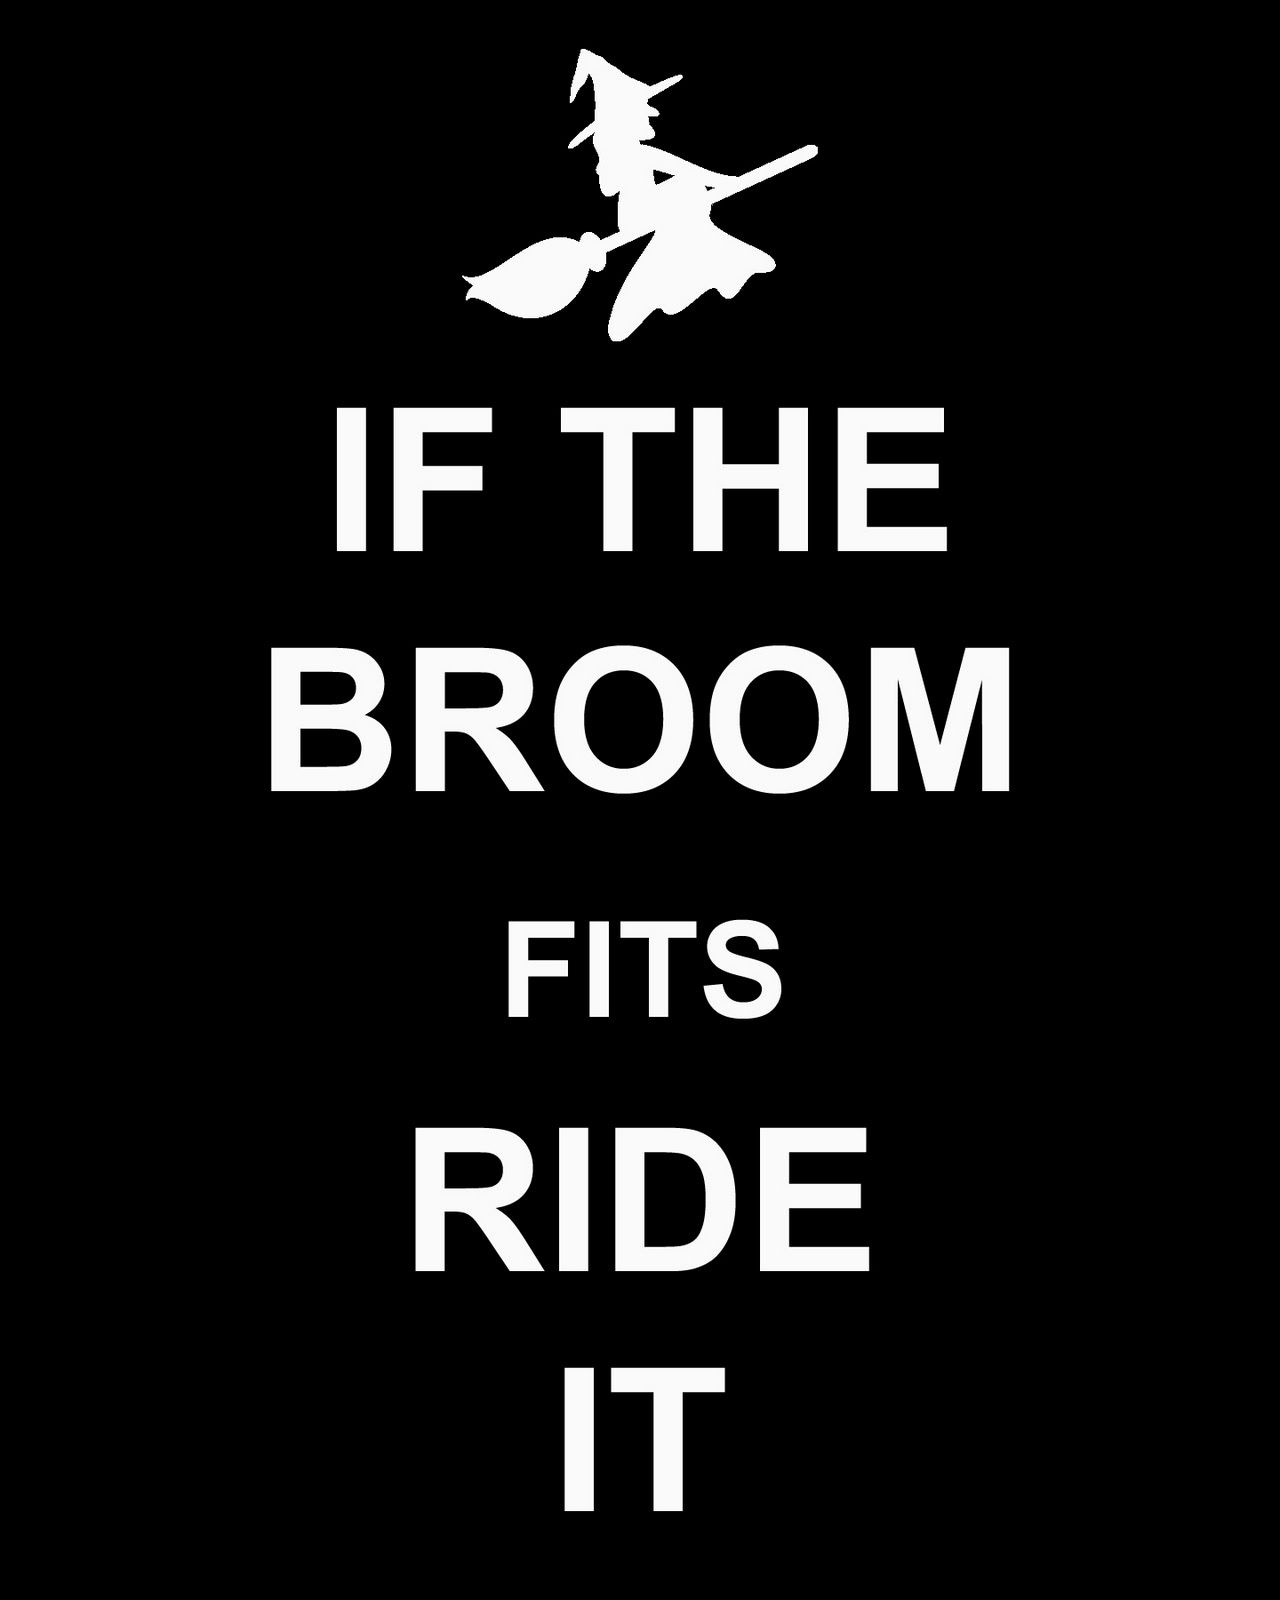 If the broom fits, ride it!